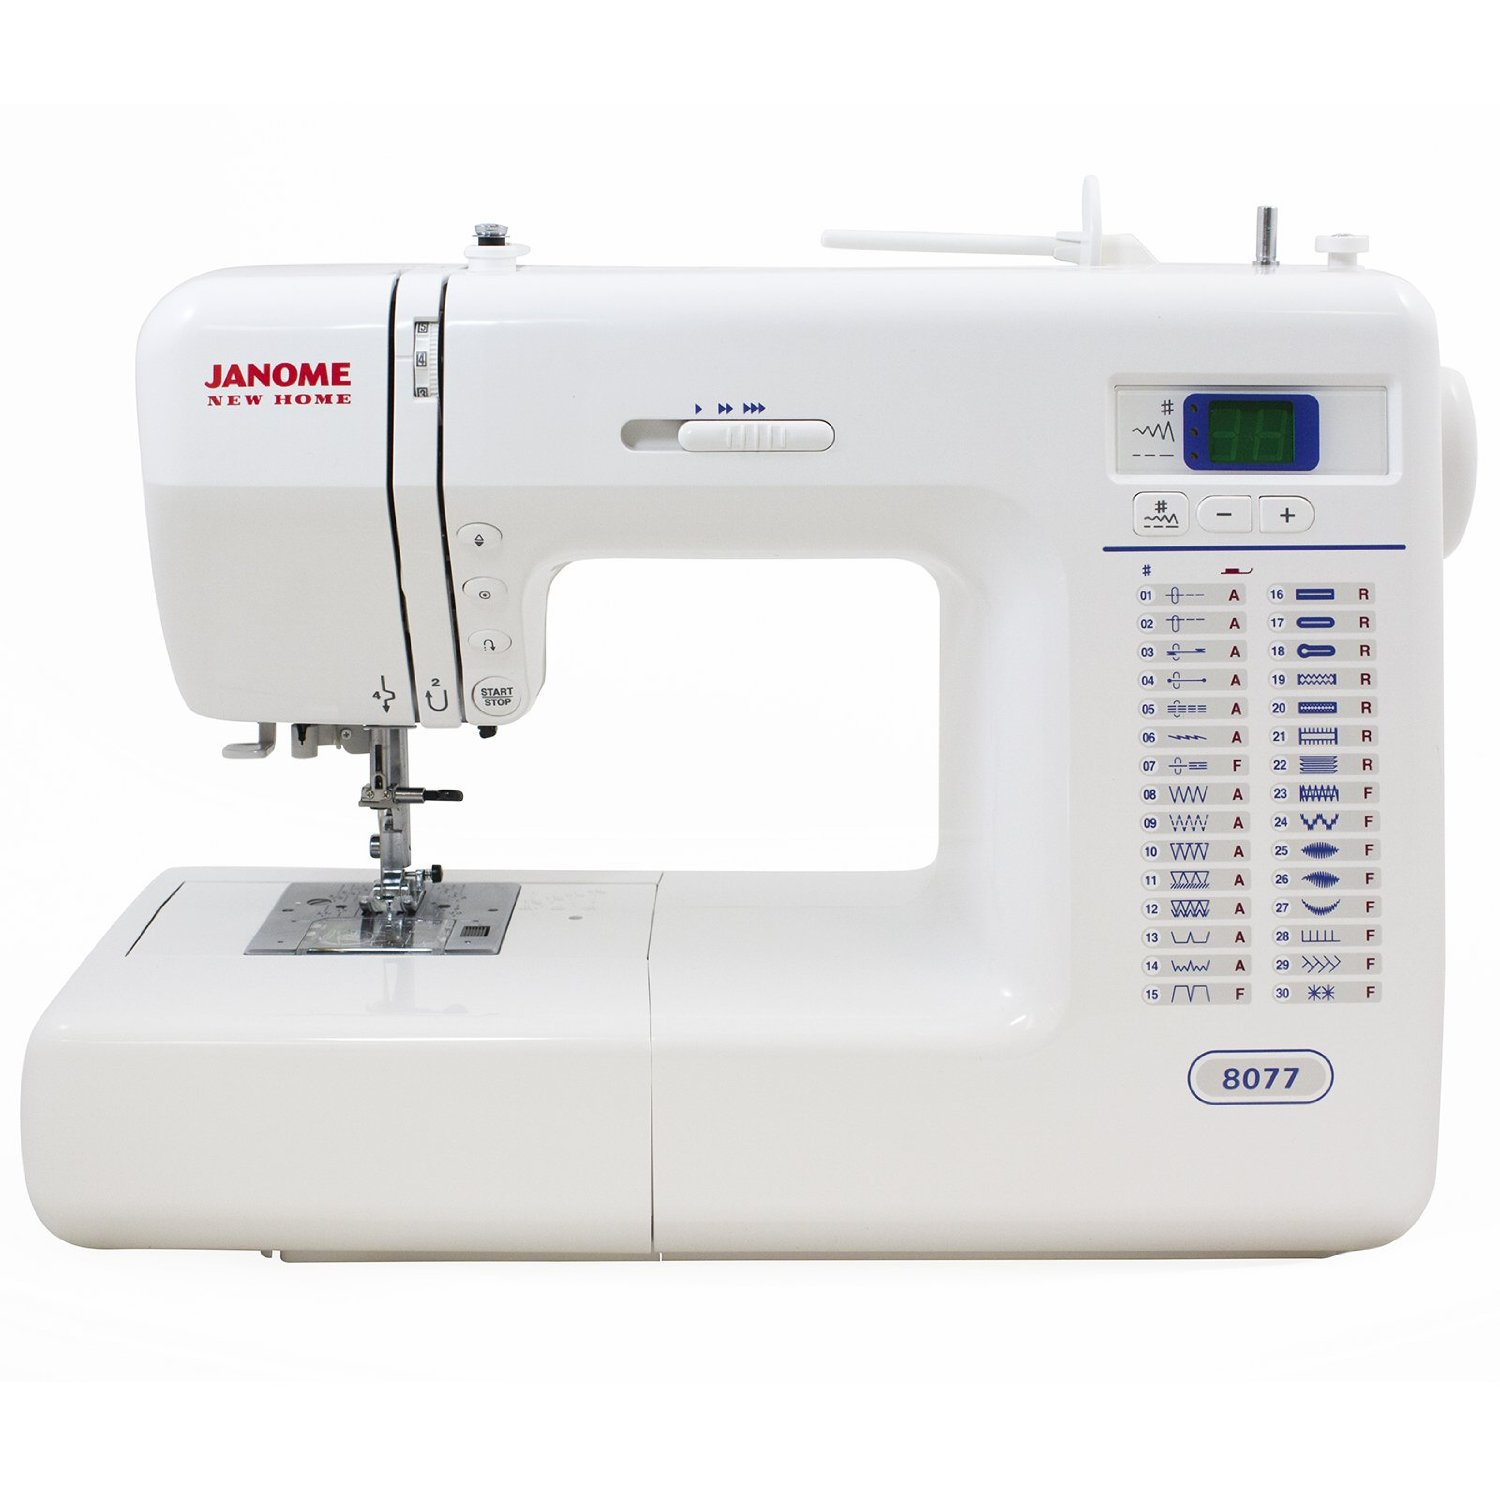 Cheap Sewing Machines Australia The Best Sewing Machines For Making Clothes Dressmaking Mostcraft